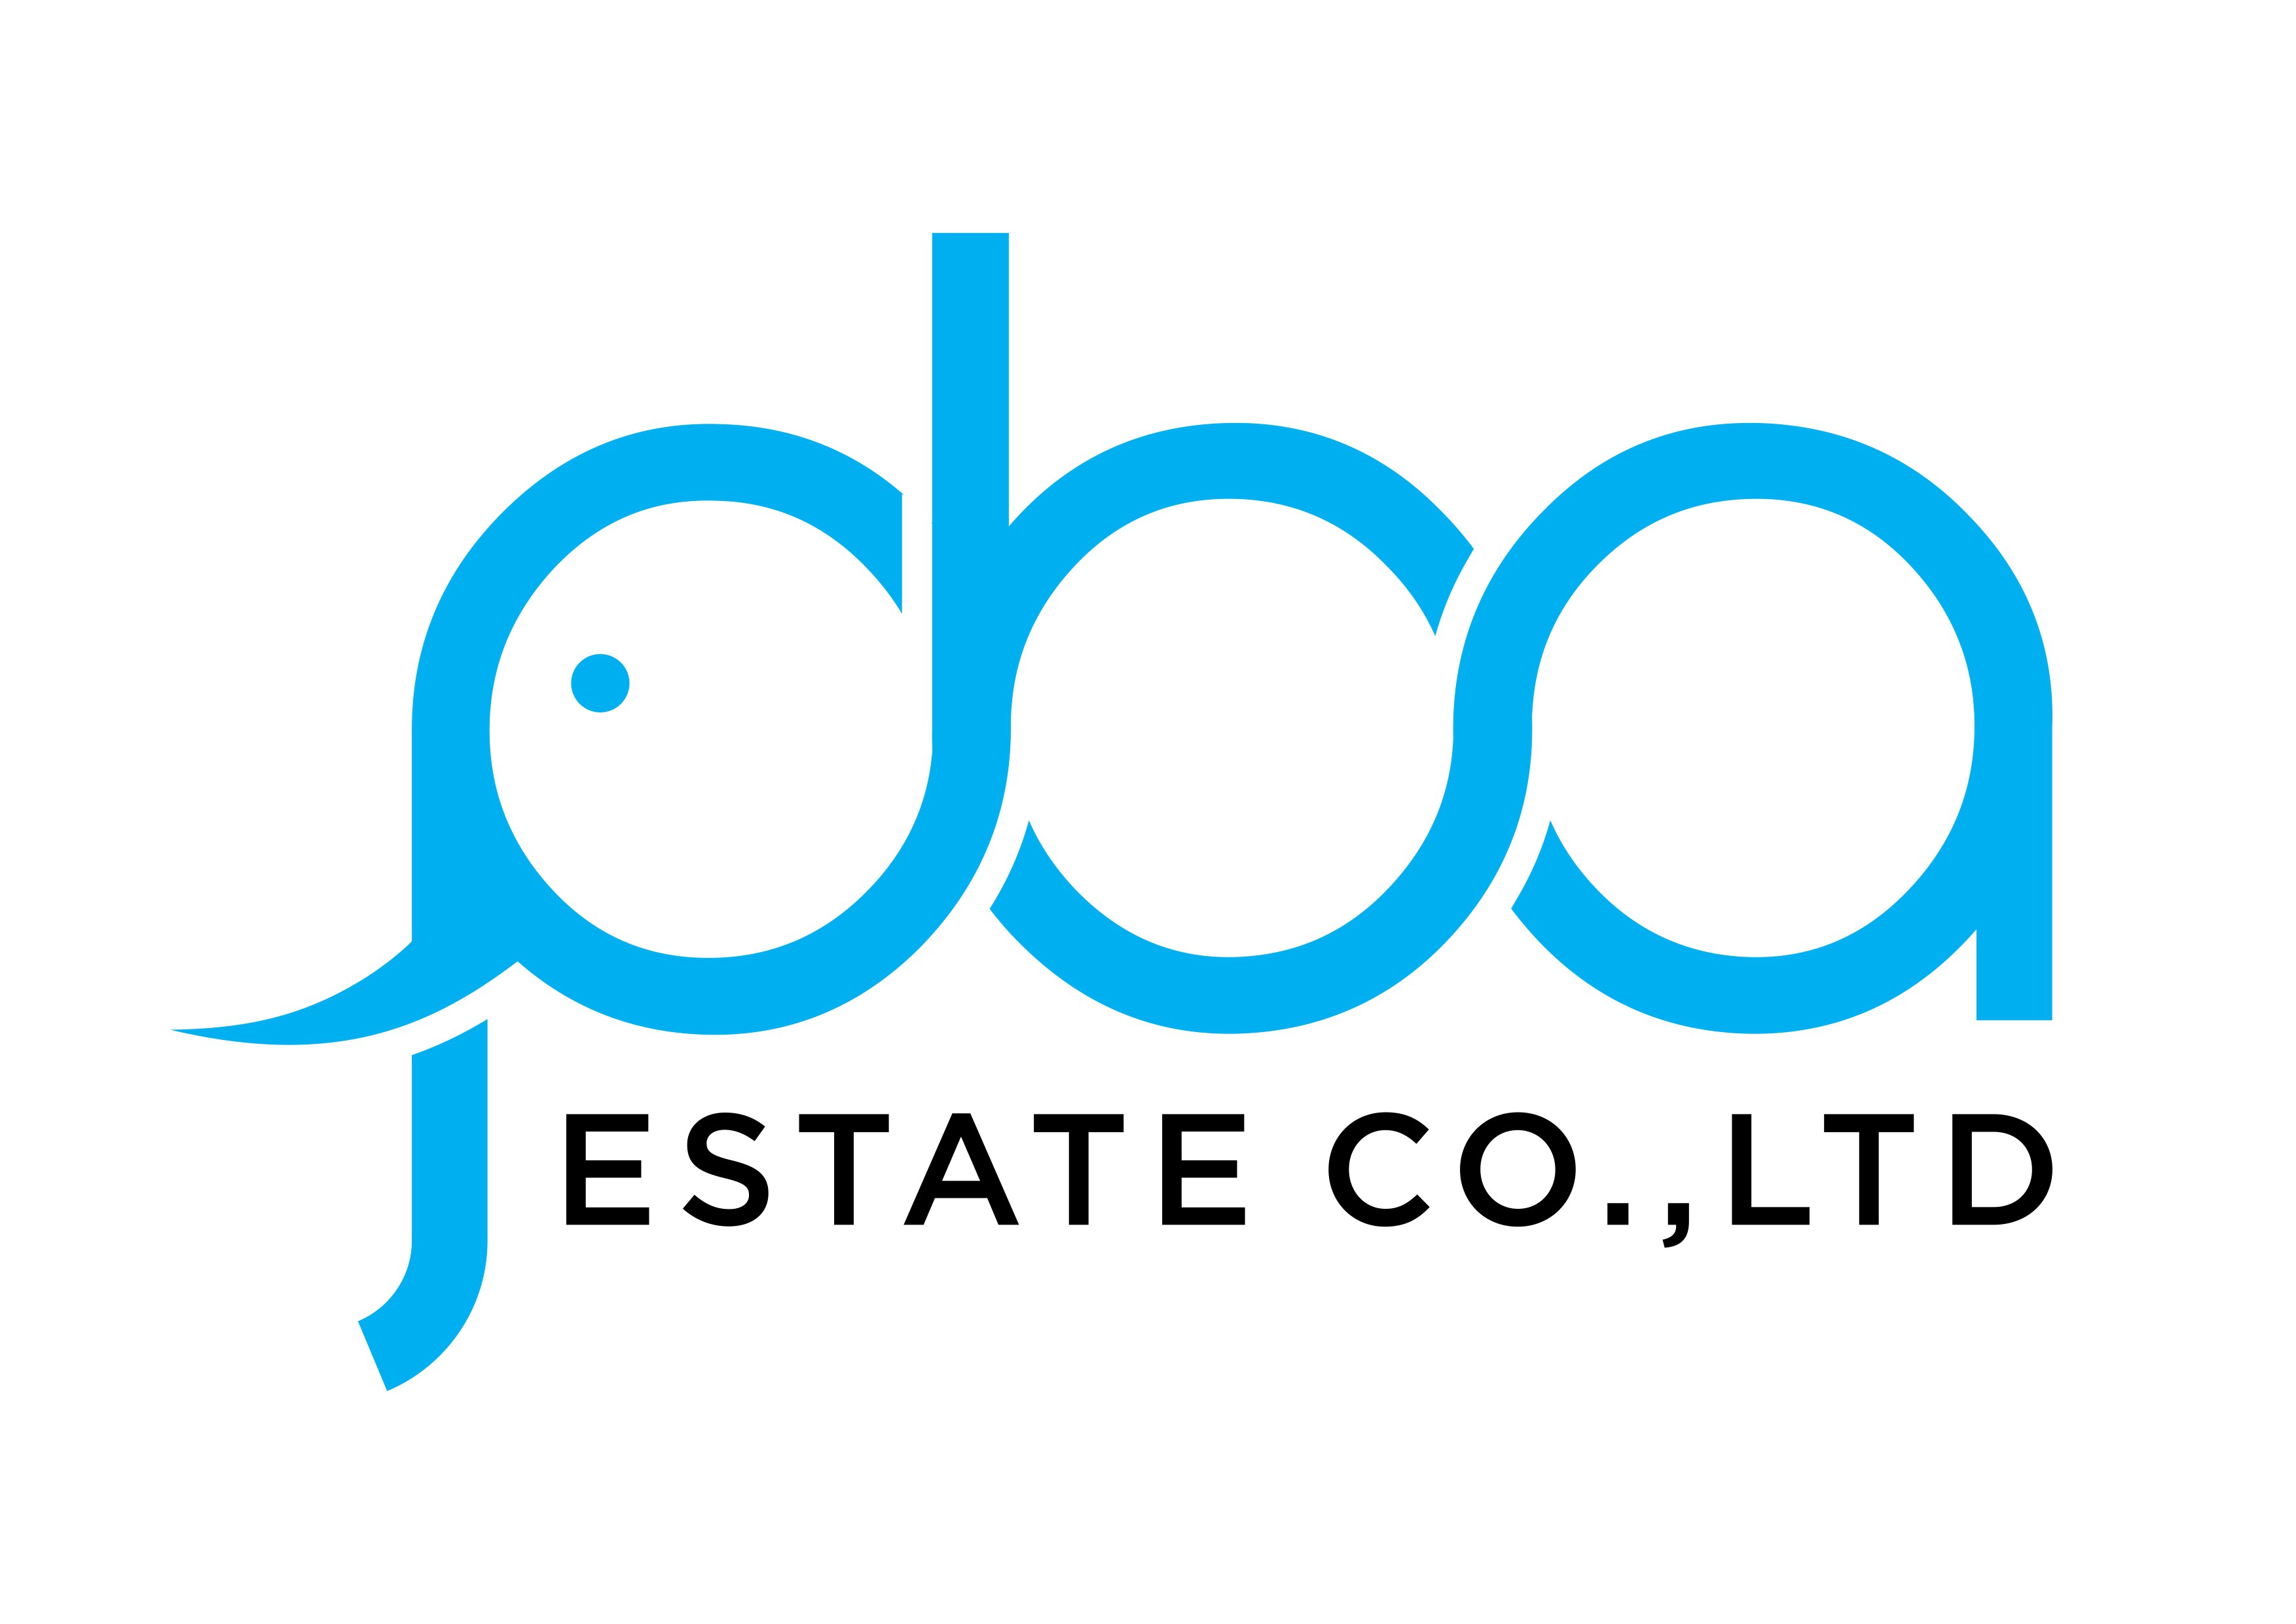 An incredibly clever with hidden meaning logo for PBA ESTATE